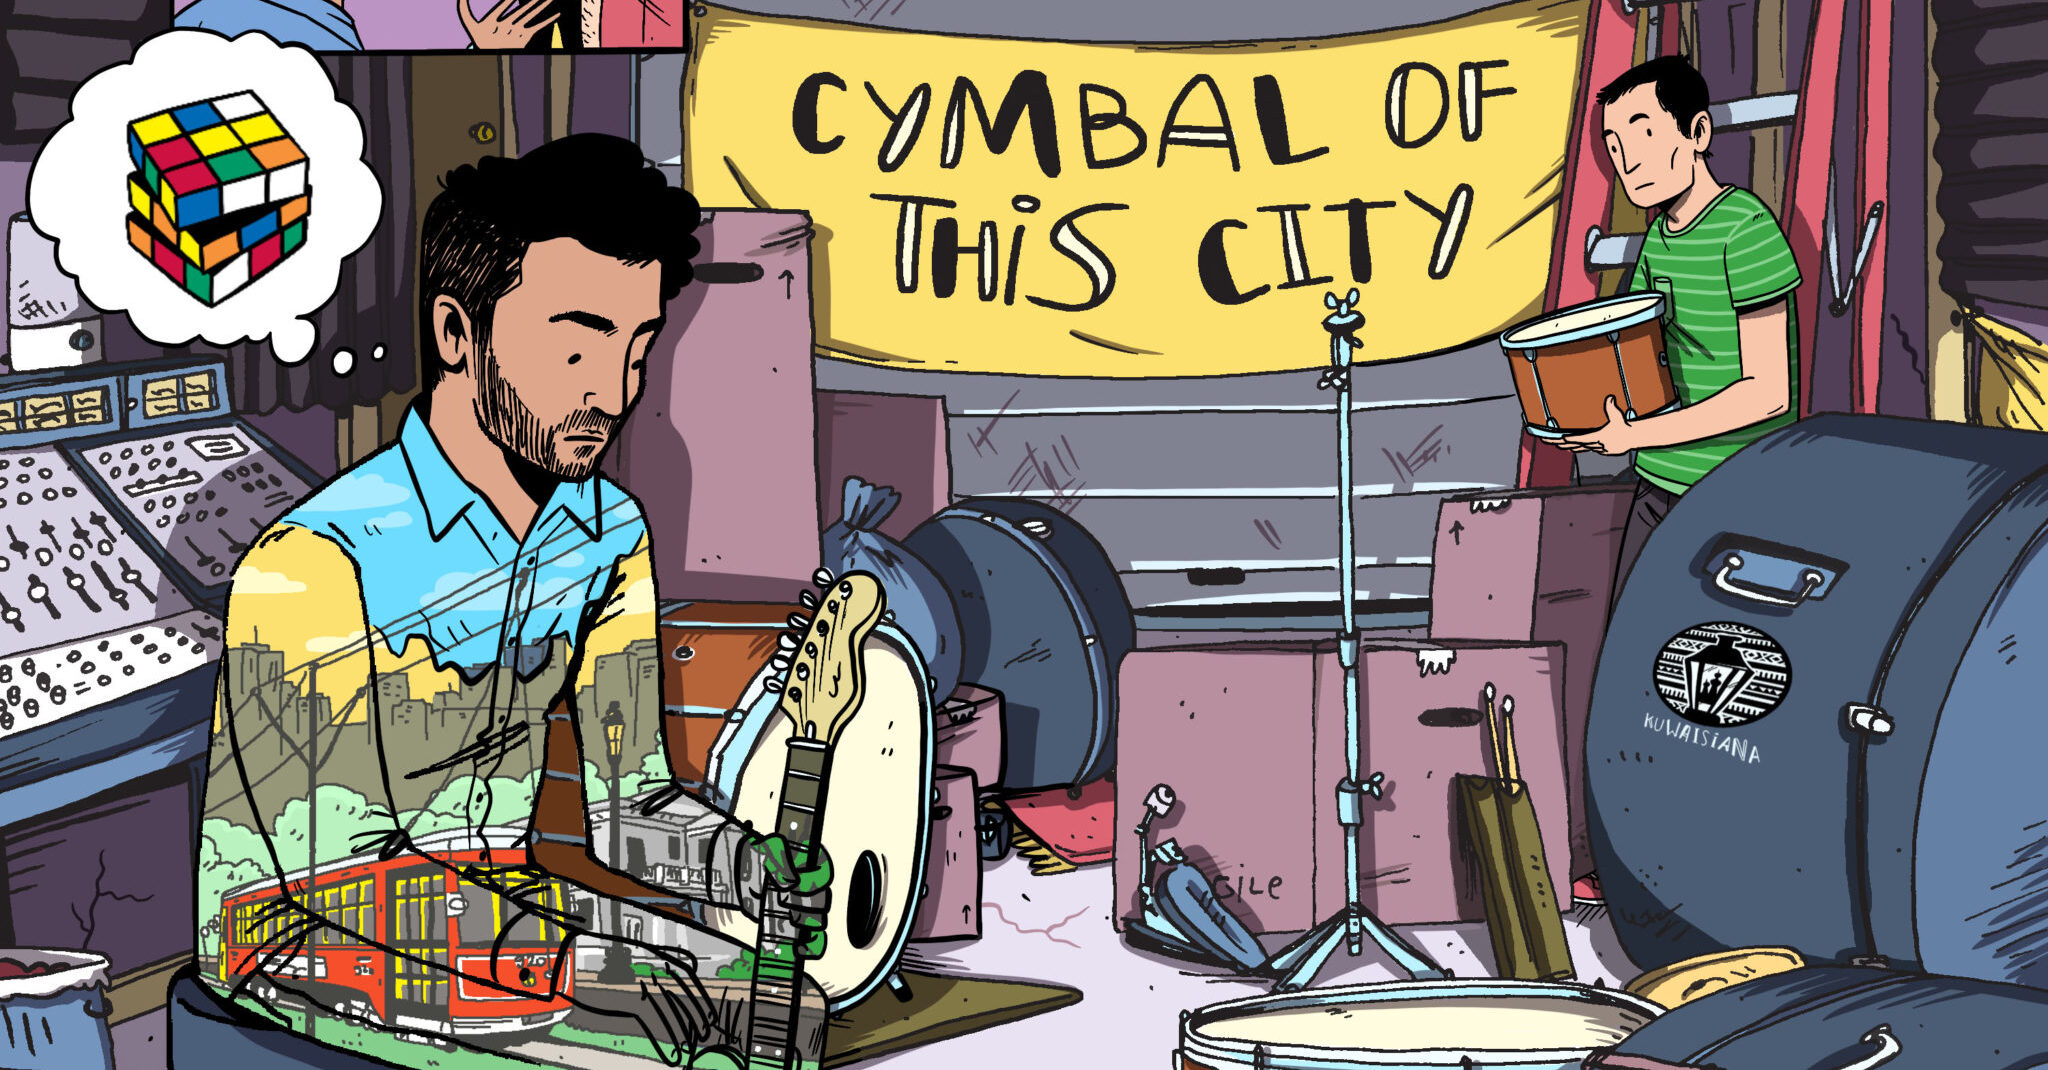 Cymbal of this City Single Art